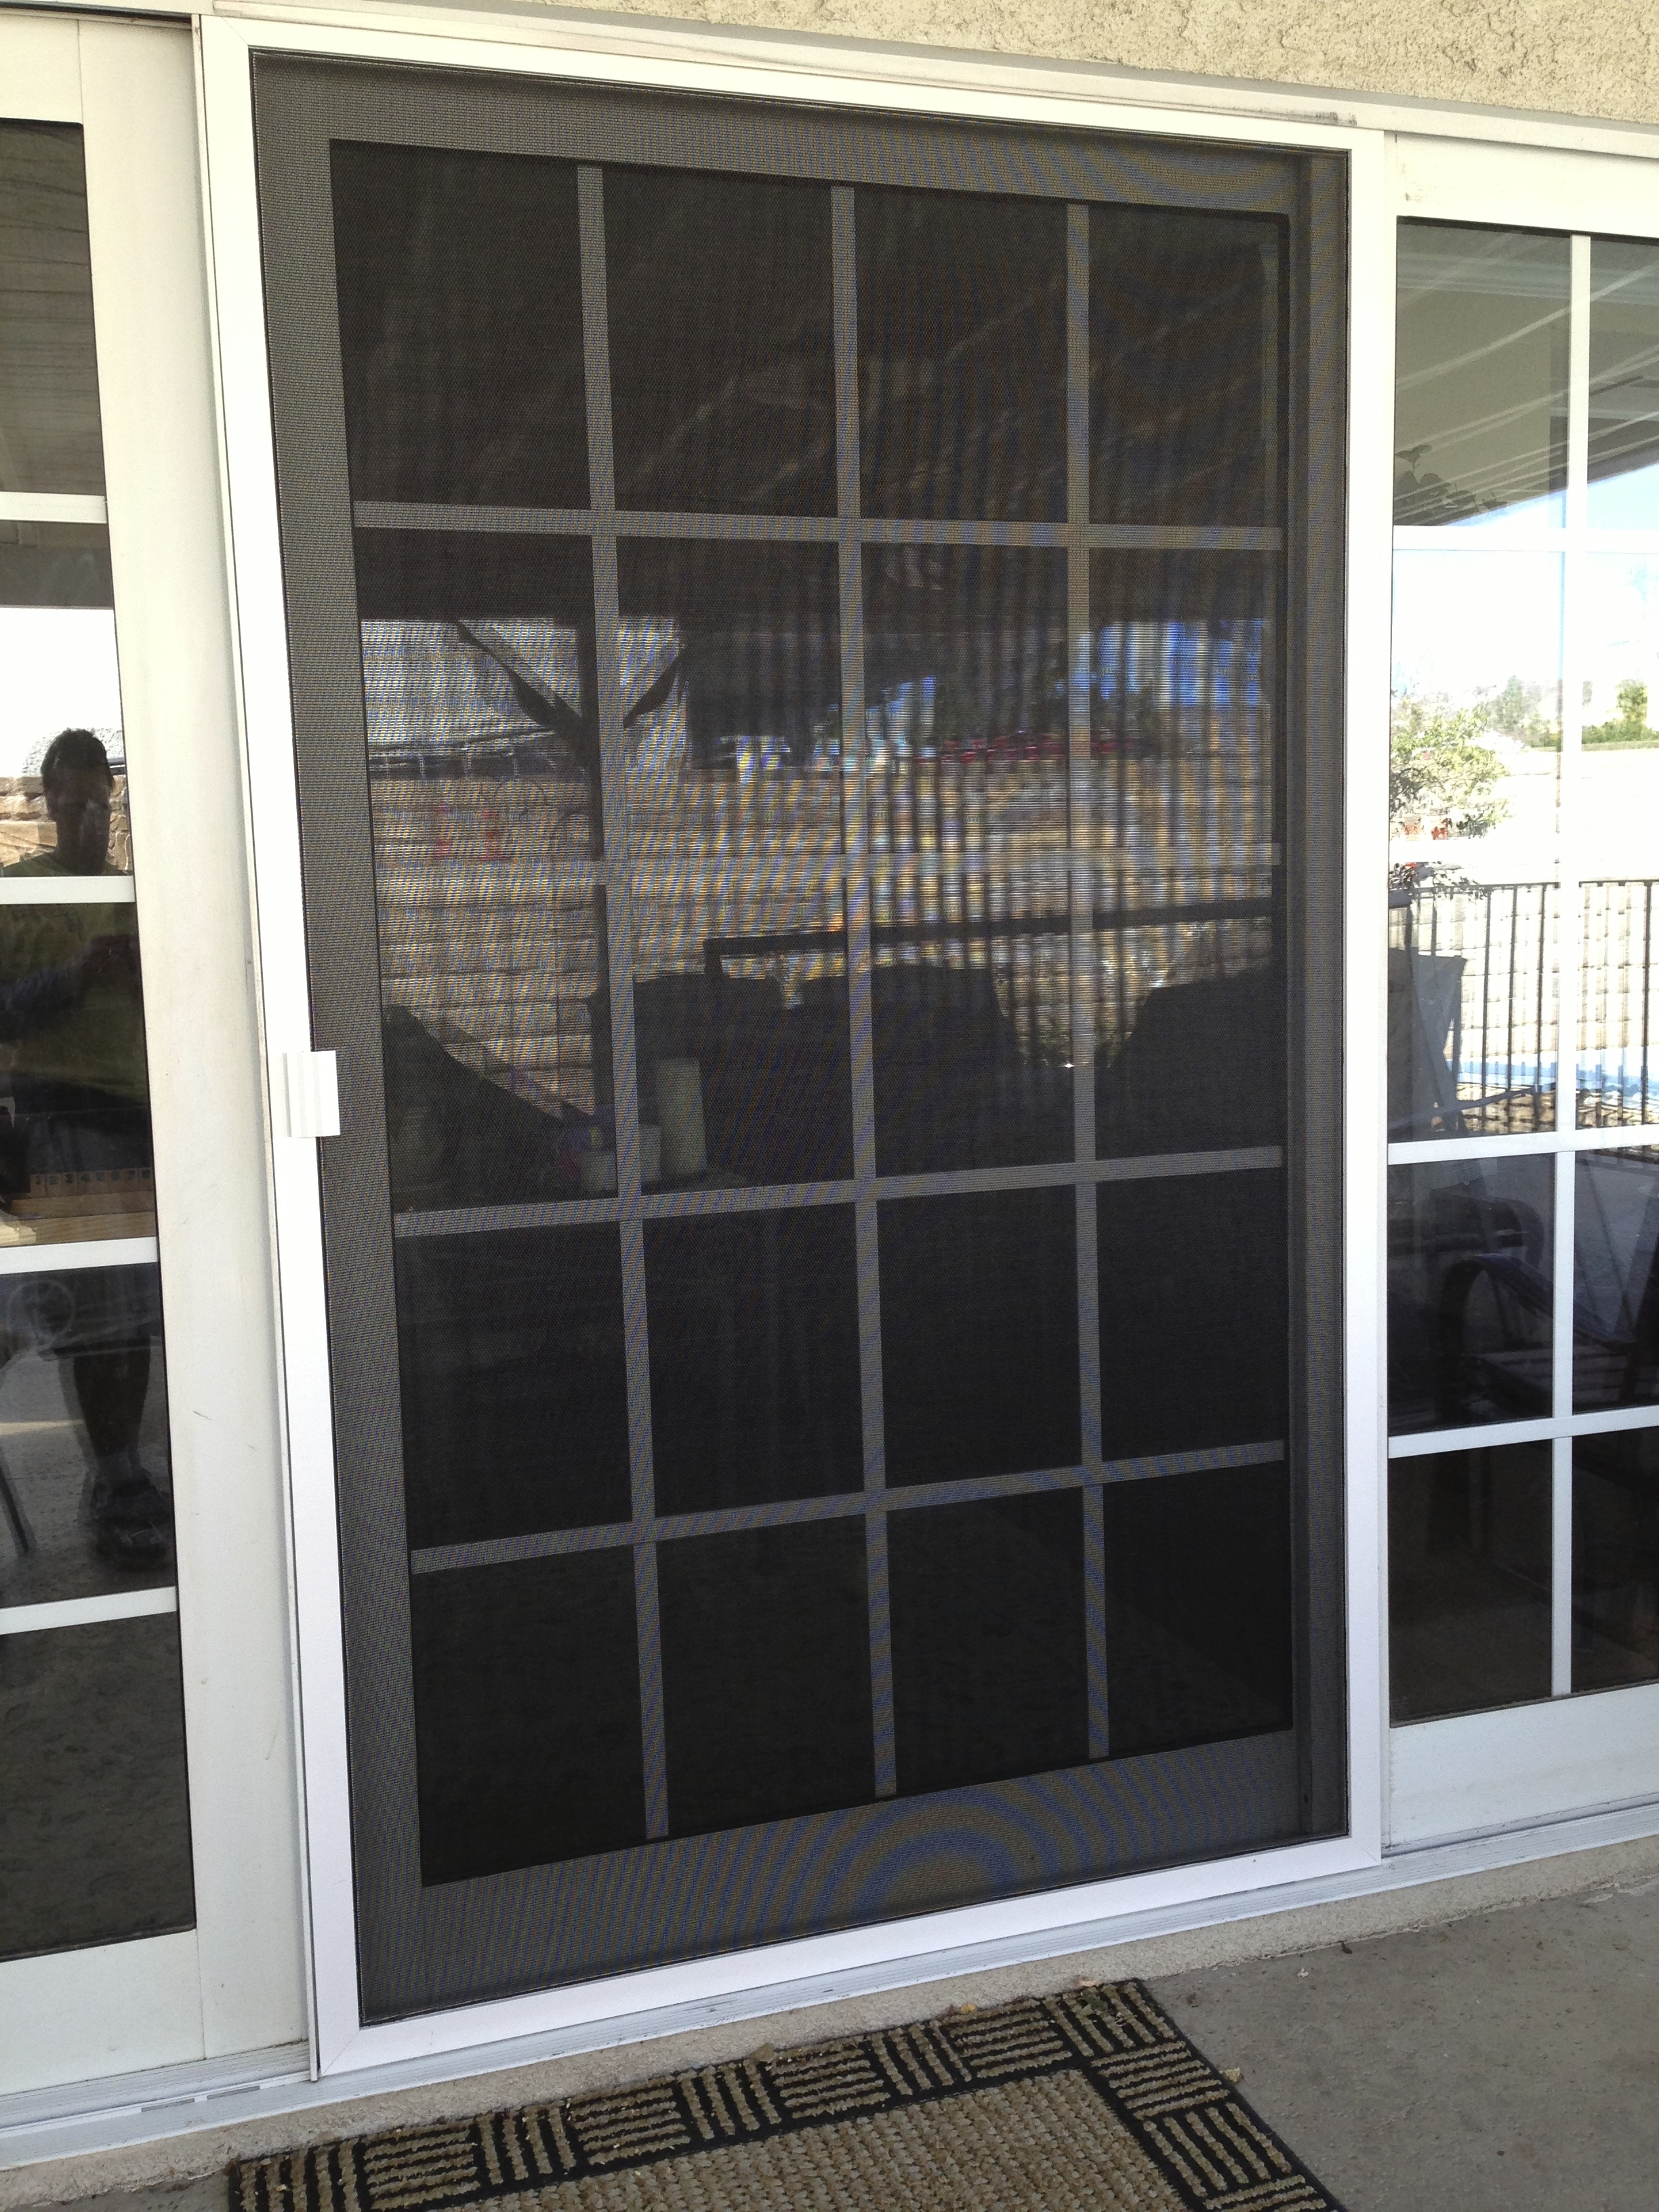 Simi valley screen doors rescreened how to choose the for New sliding screen door